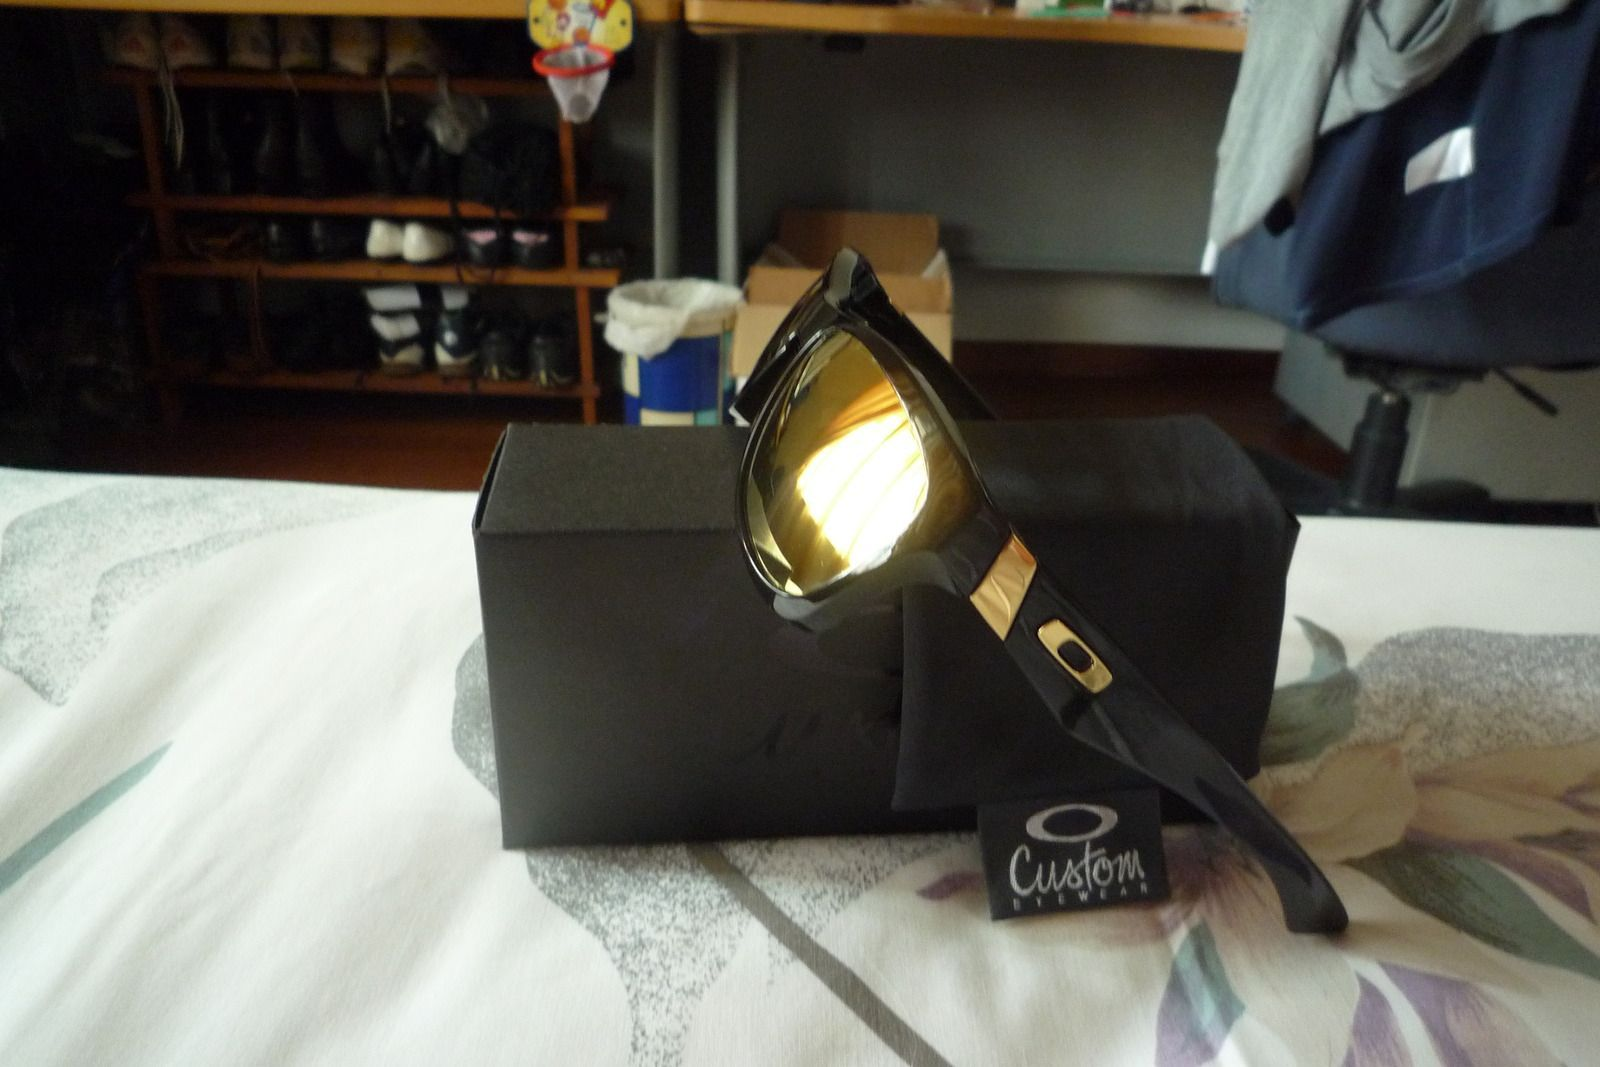 Oakley Yourself Edition, Customs Freaks...!!! - p1020066eb.jpg